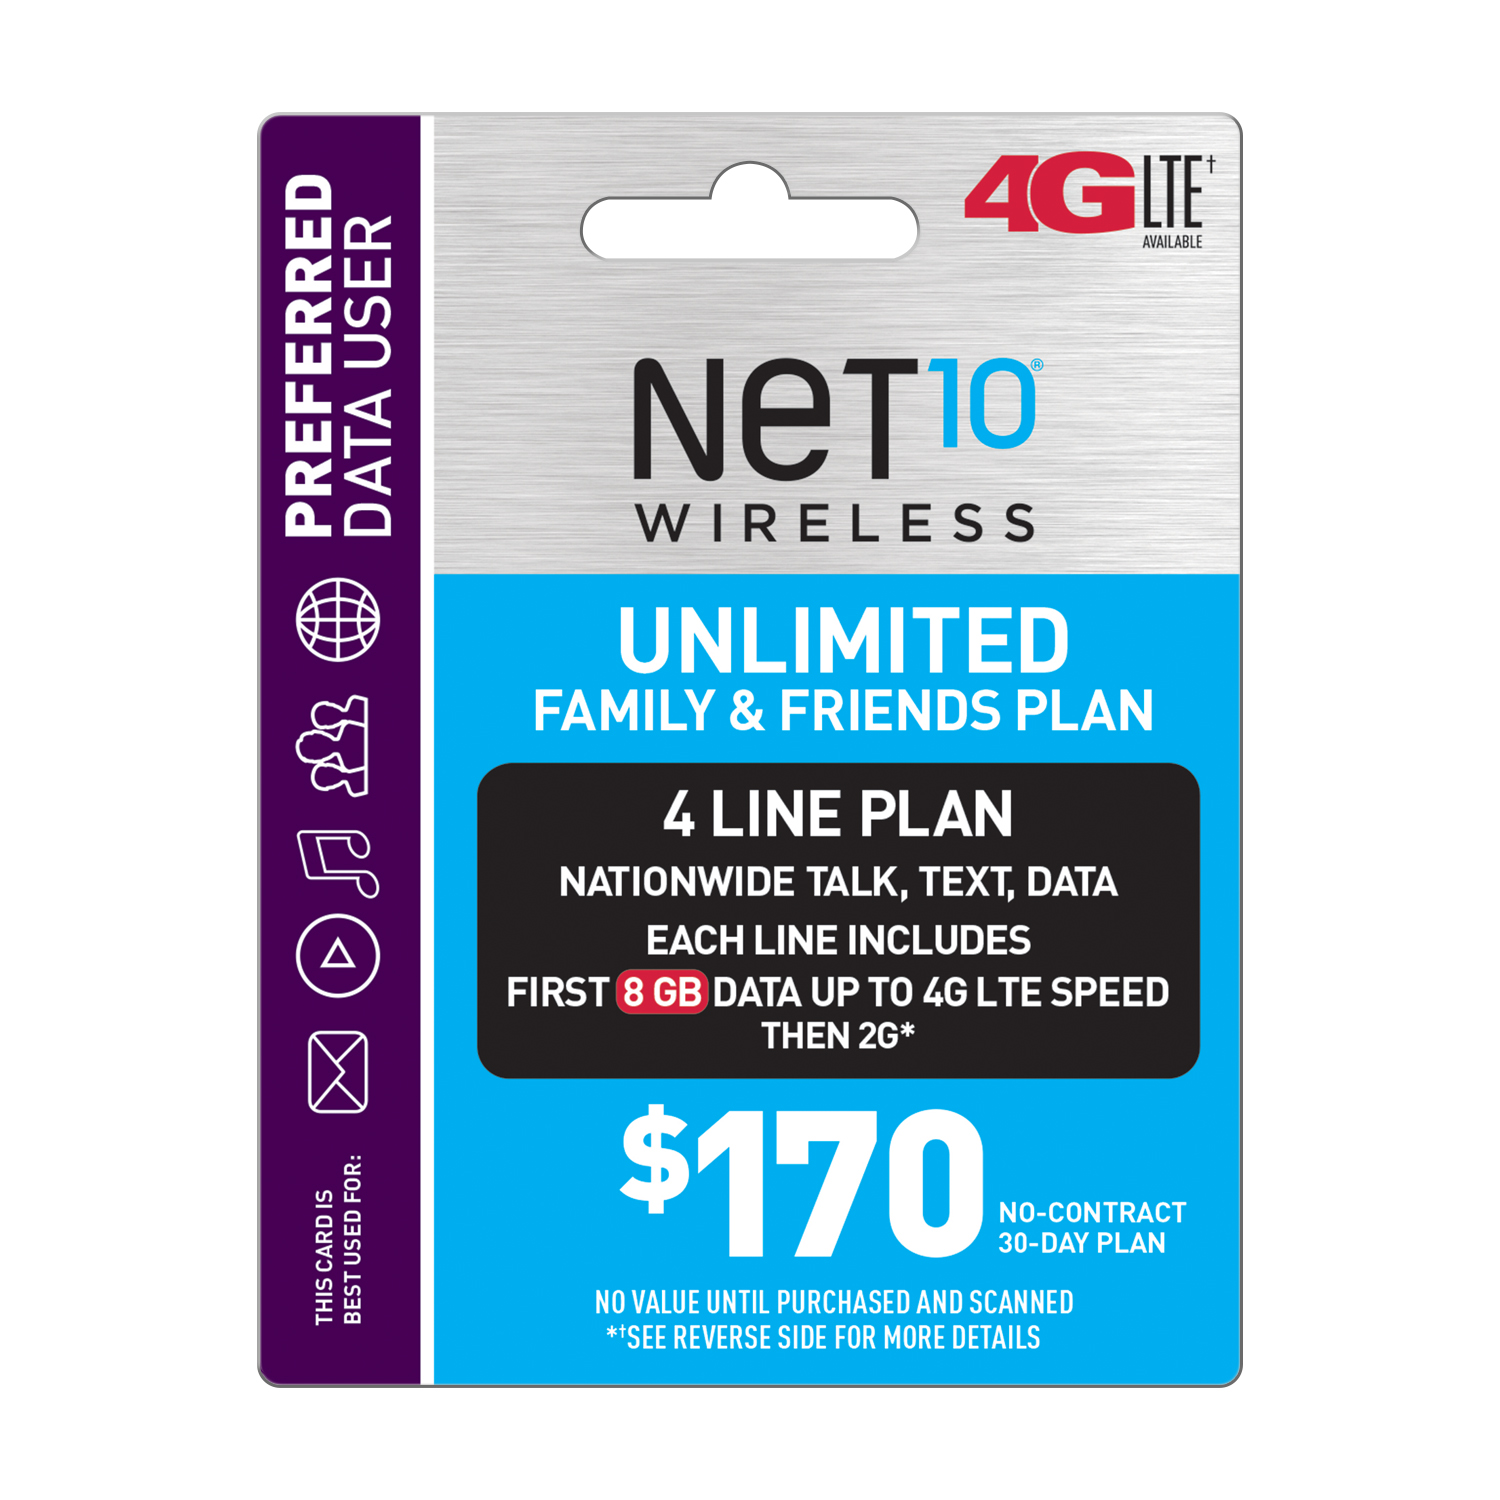 Net10 $170 Unlimited Family & Friends Plan for 4 Lines (8GB of data per line at high speeds, then 2G*) (Email Delivery)